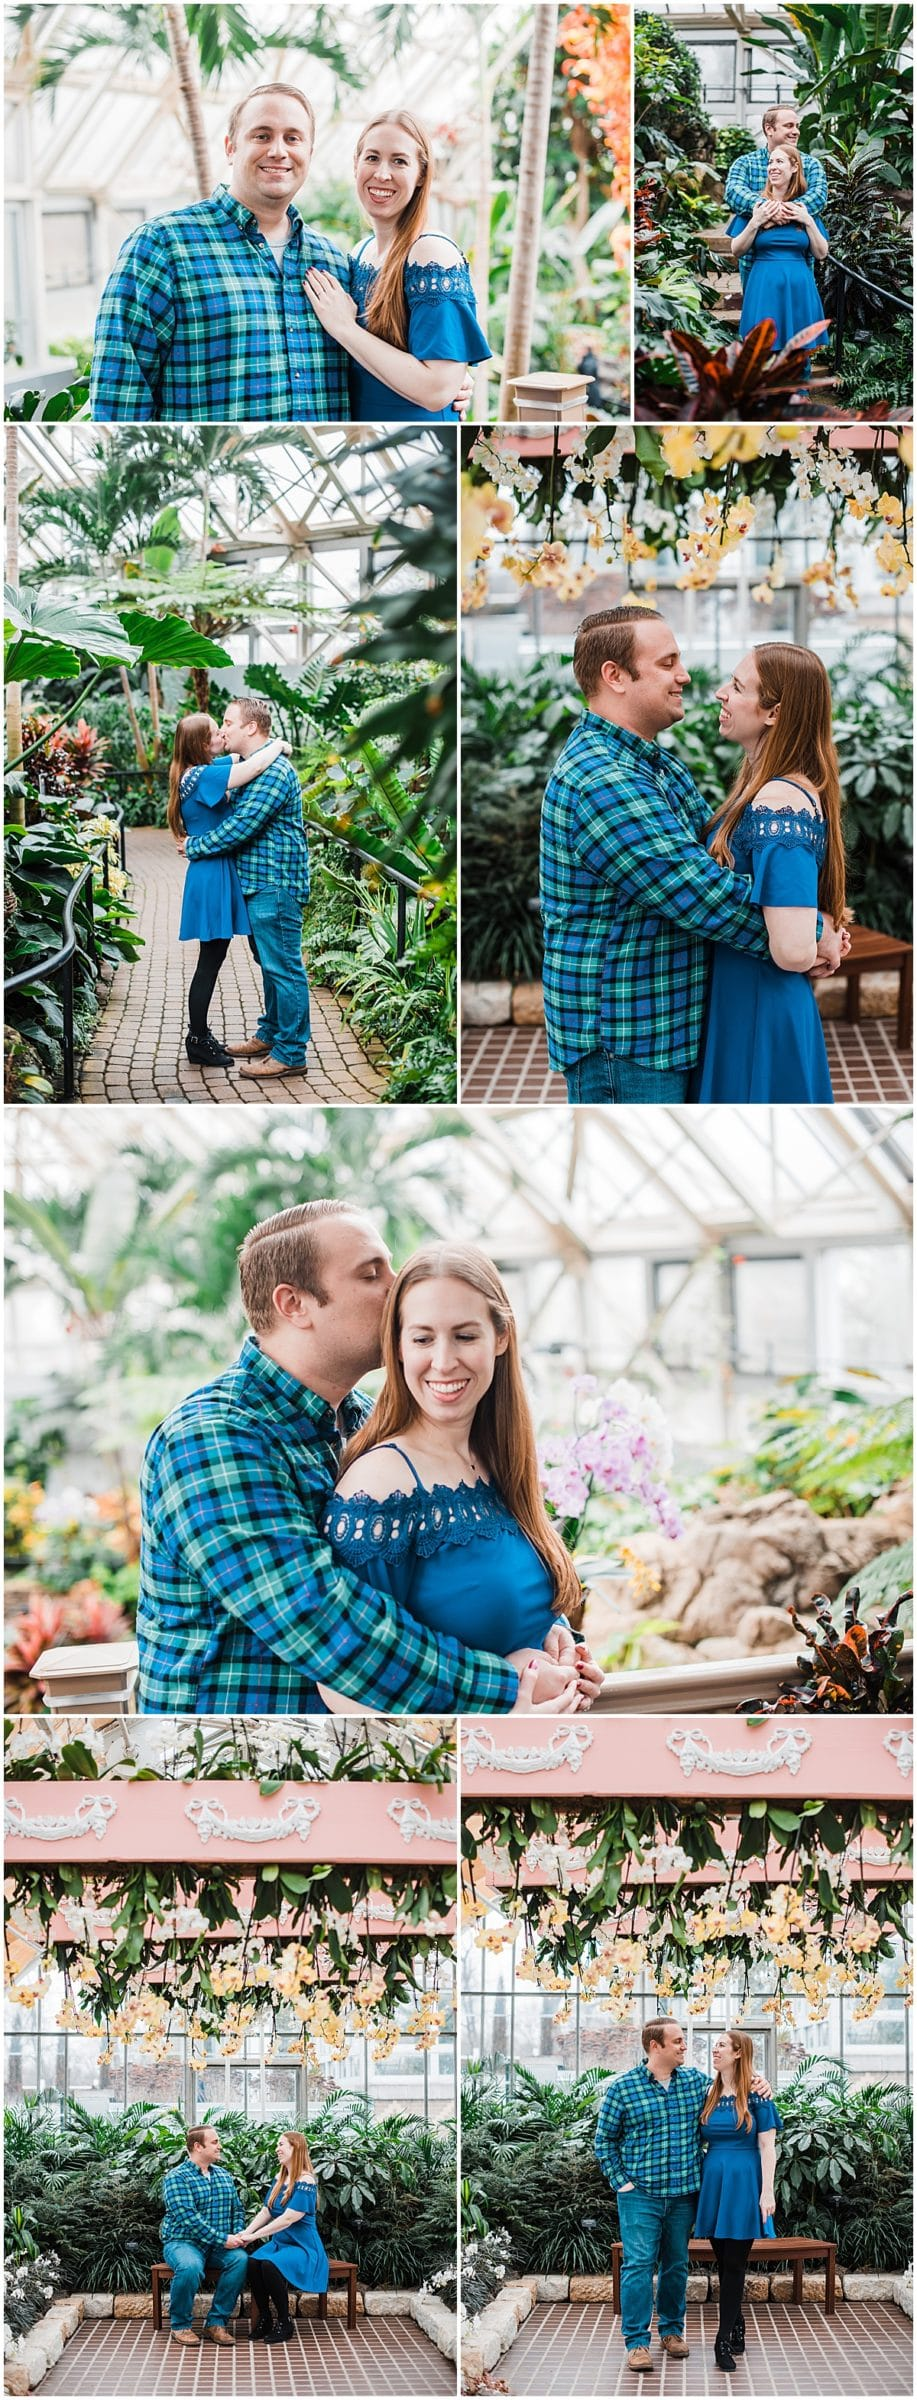 Franklin_park_conservatory_wedding_columbus